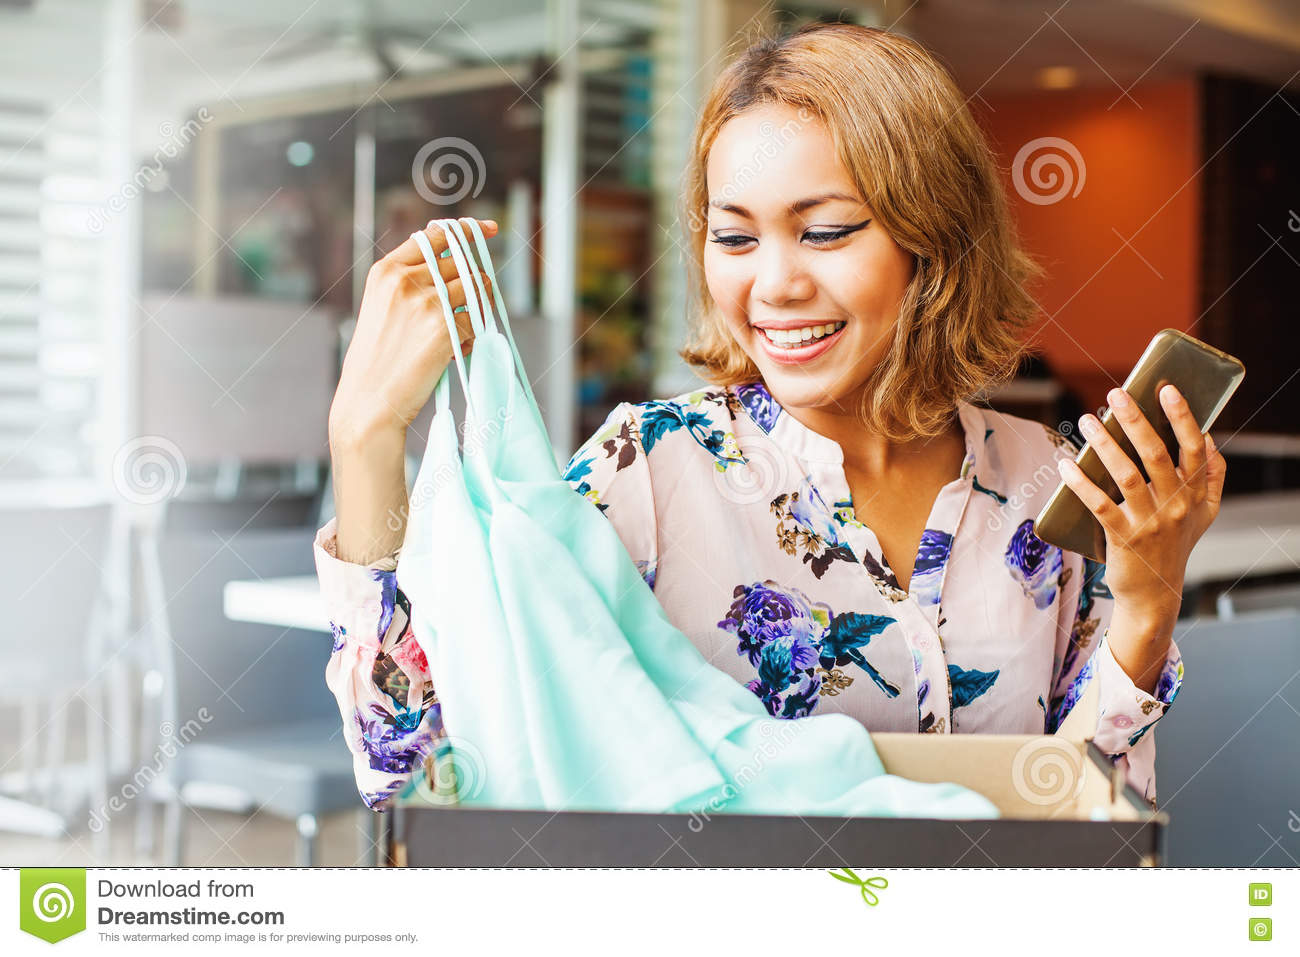 Woman looking at clothes she got from online store